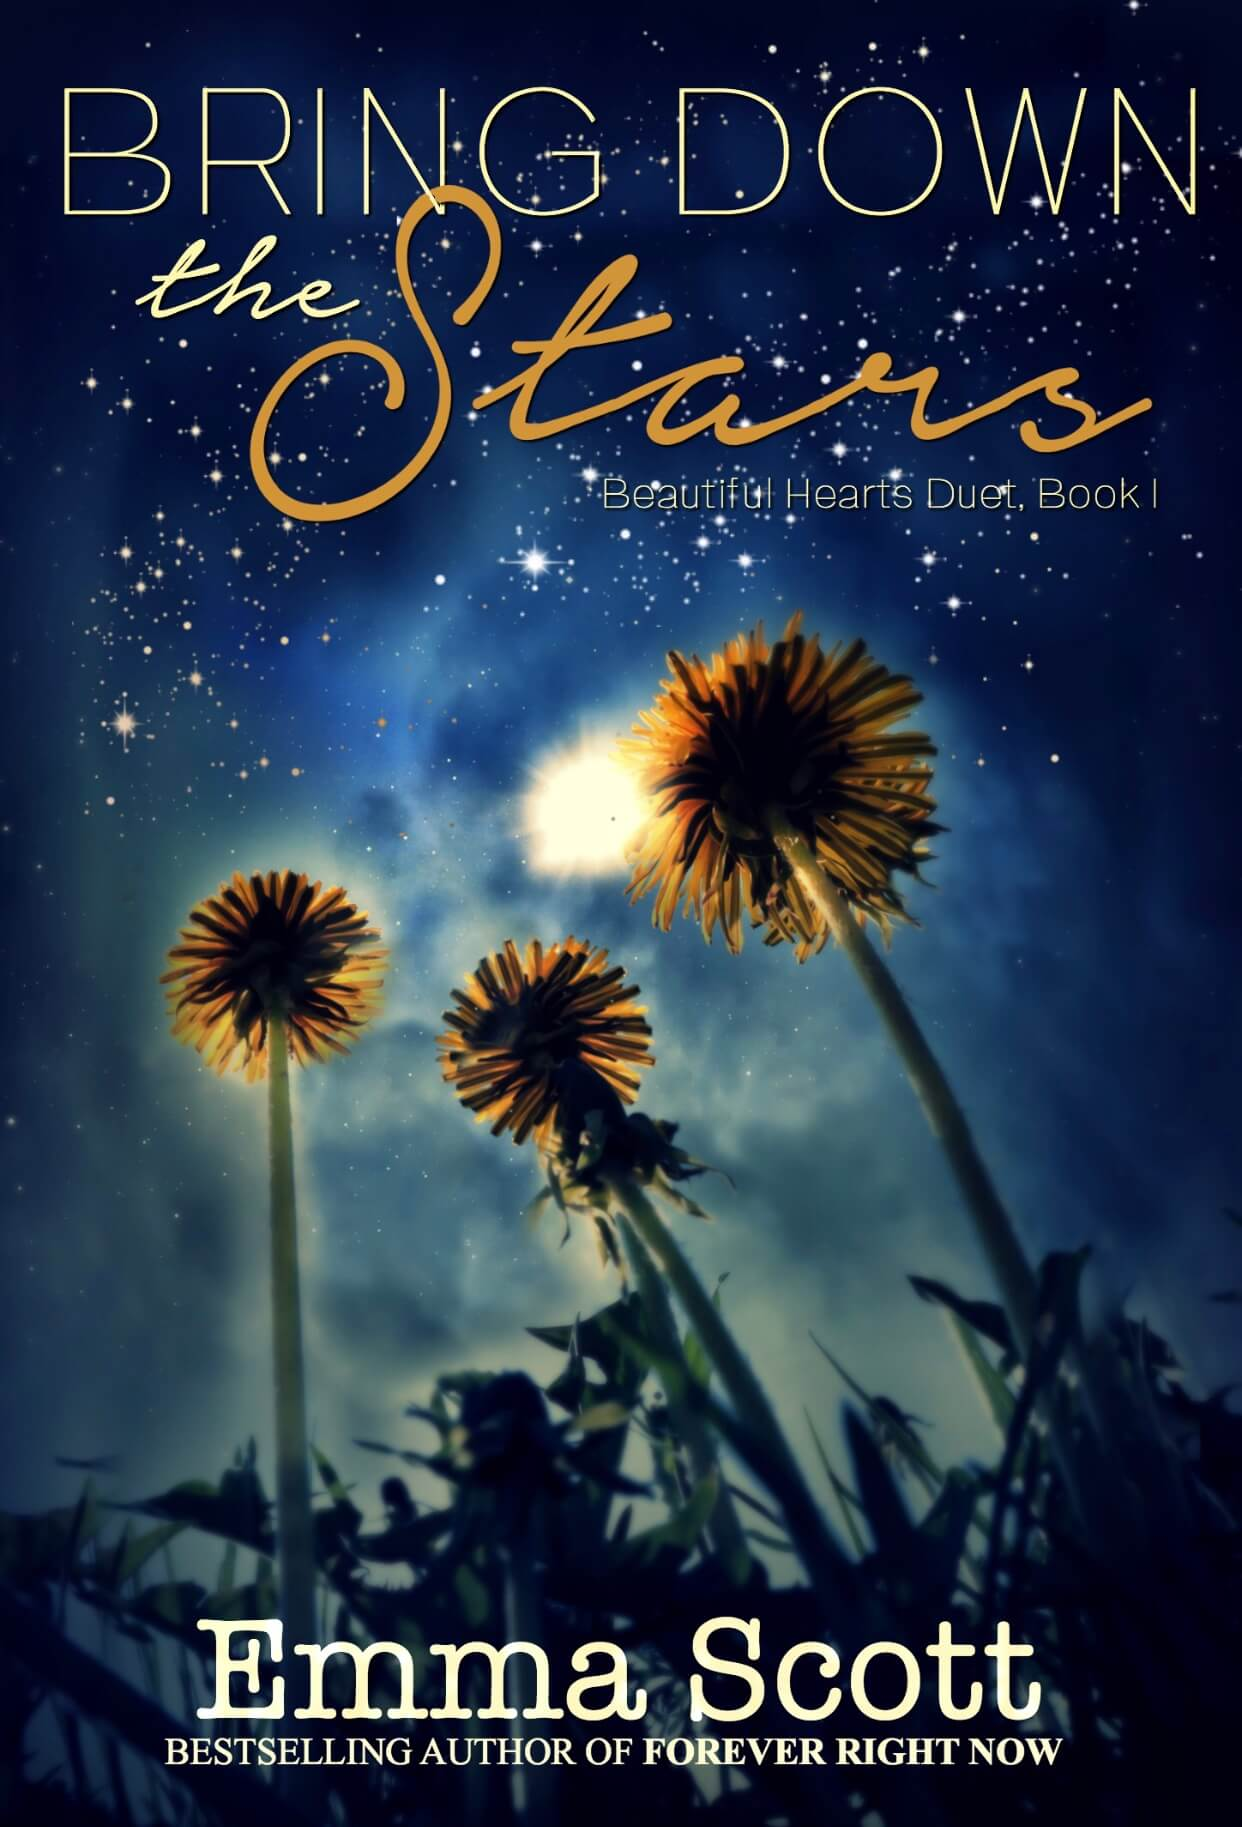 * Bring Down the Stars (Beautiful Hearts duet book 1) by Emma Scott * Blog Tour * Excerpt * 5 Star Review *